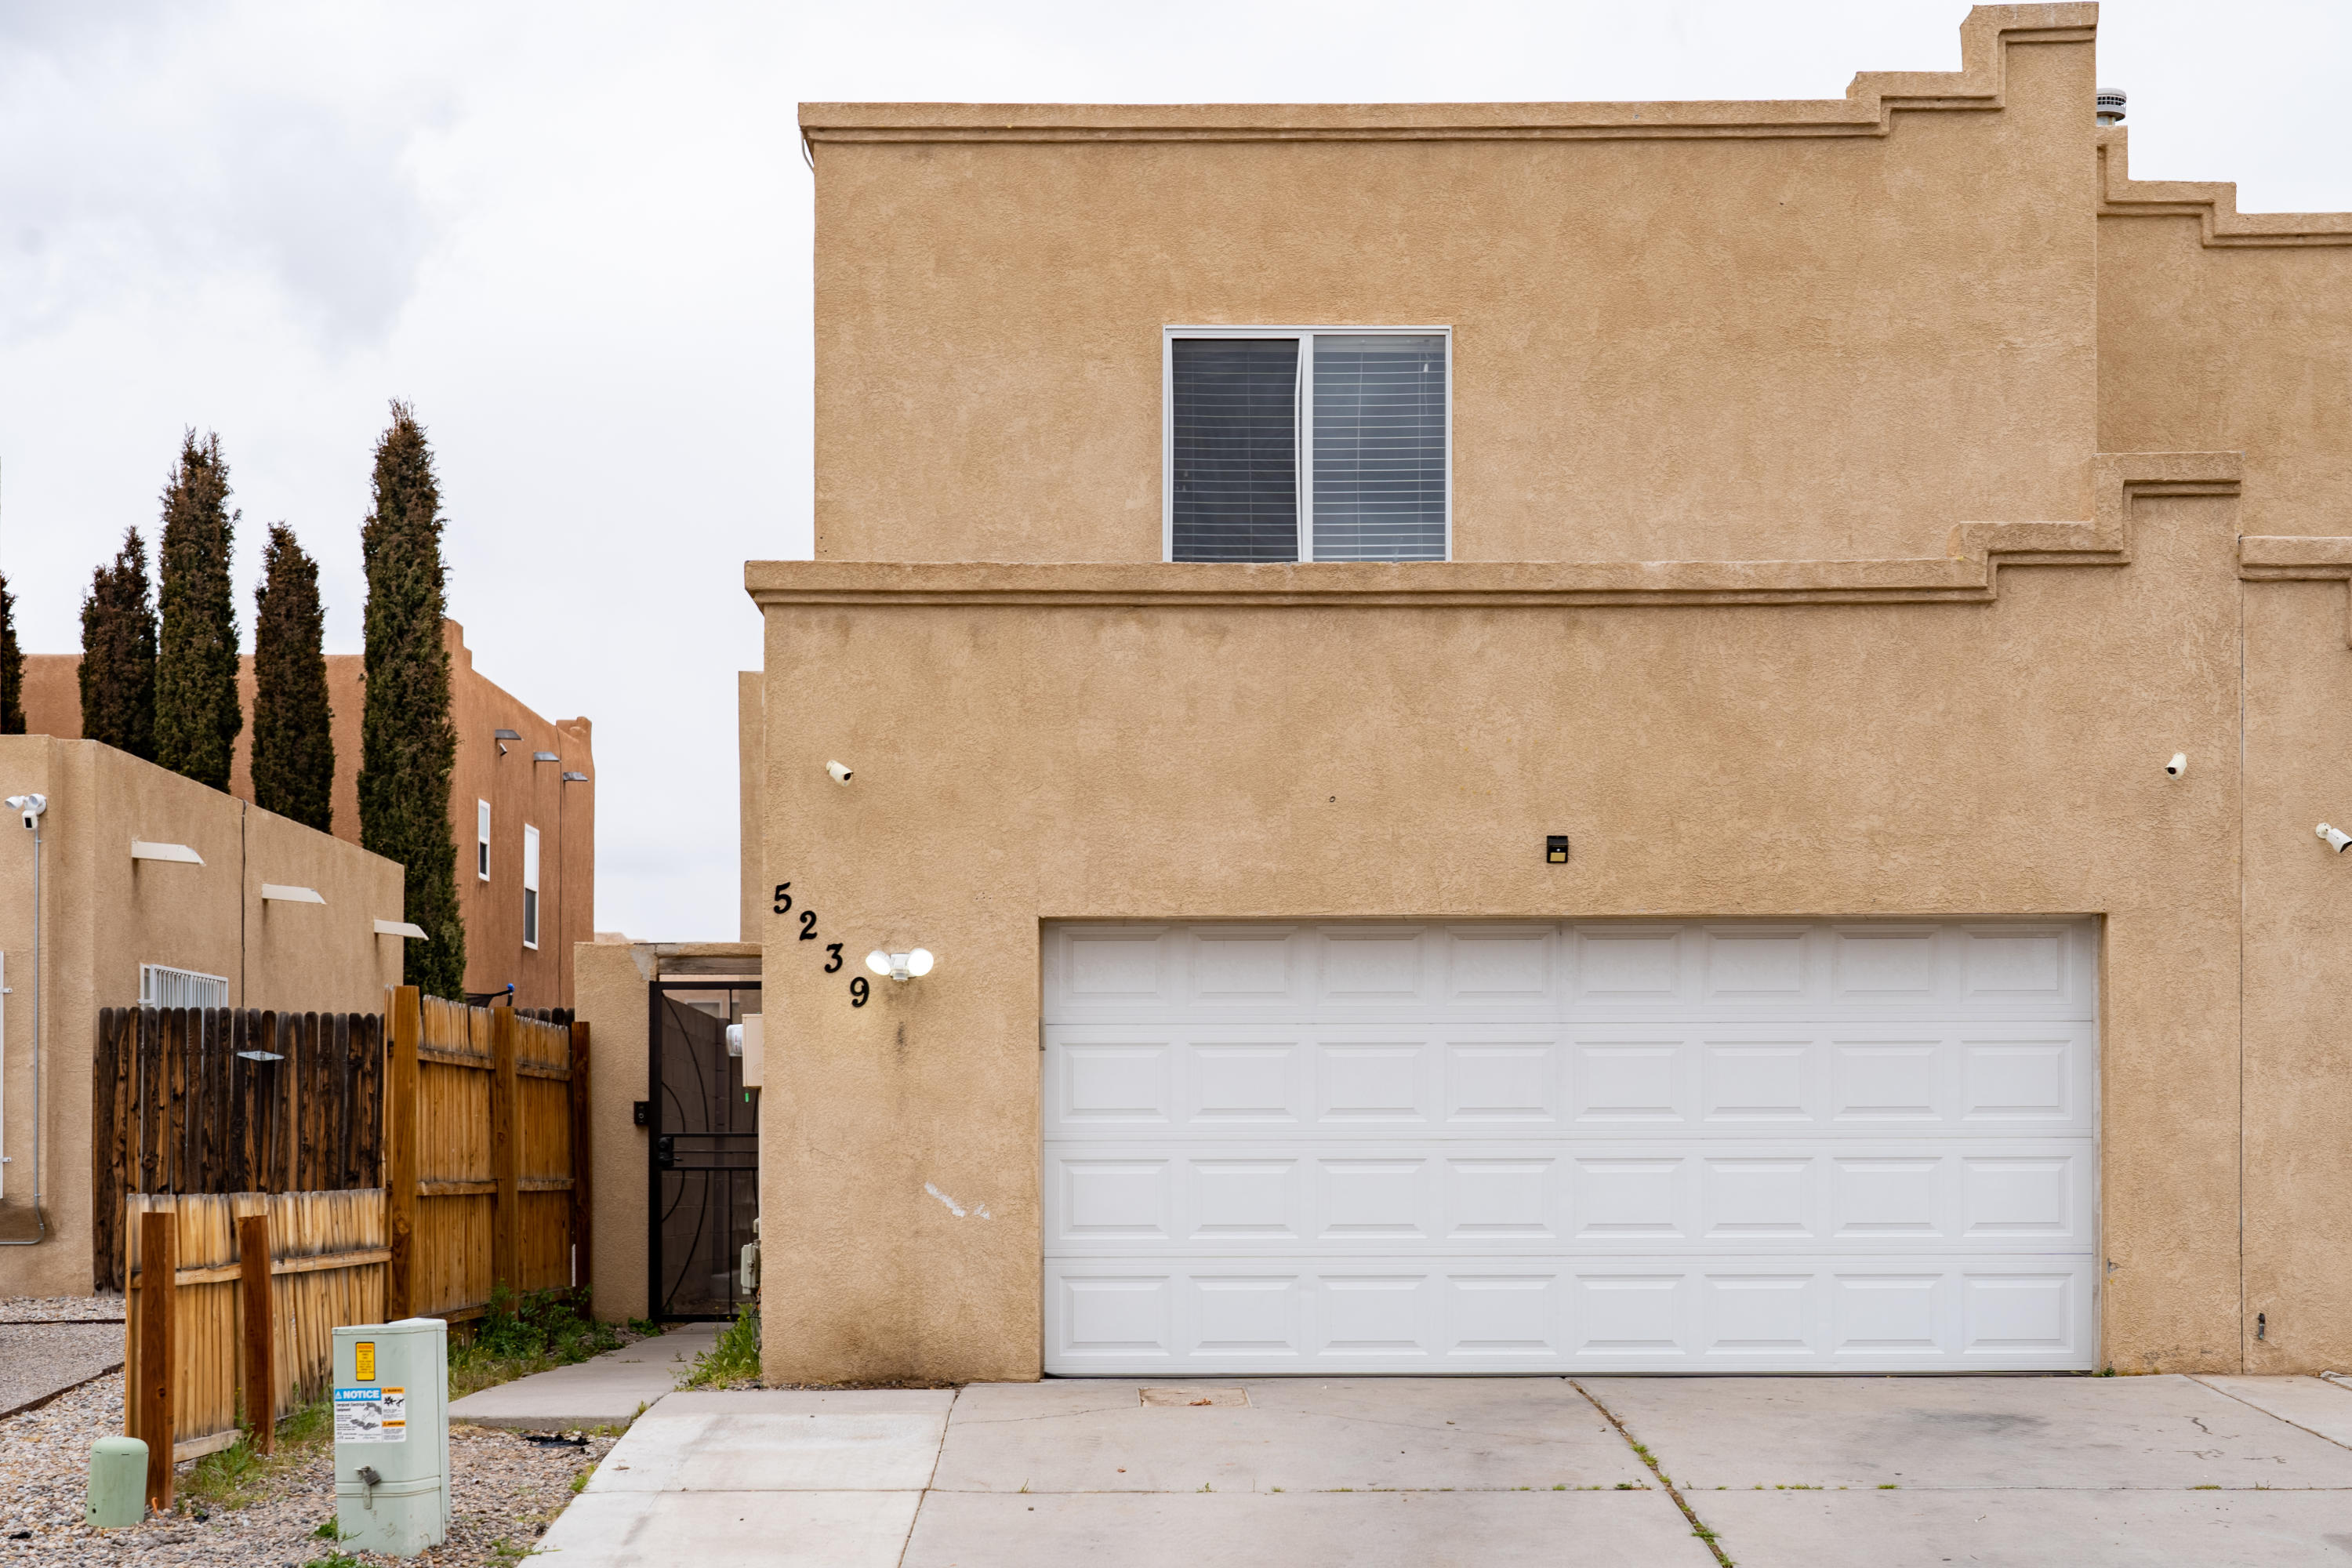 This charming townhome won't last long! Open house on Sunday (3/28) from 1-4pm! Conveniently located near stores and the freeway. Open concept and full of updates! Refrigerated air recently added to keep you cool over the summer just around the corner! All three bedrooms are upstairs with spacious bathrooms and closets! Backyard is concrete for easy maintenance and entertaining.